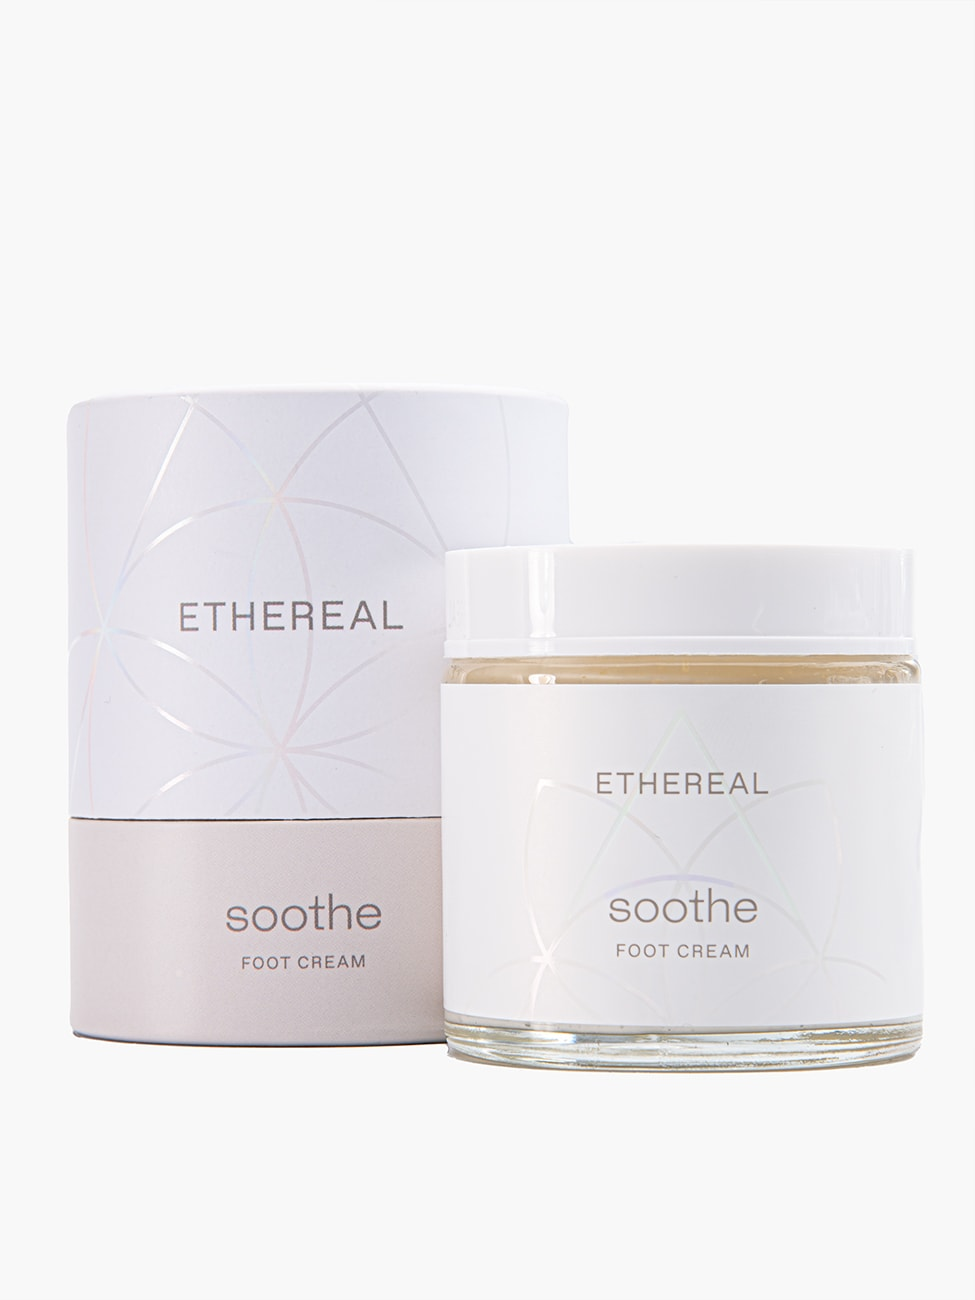 Soothe_Cream_Package_Ethereal_Dermocosmetics_Skincare_Handmade_Greek_Products